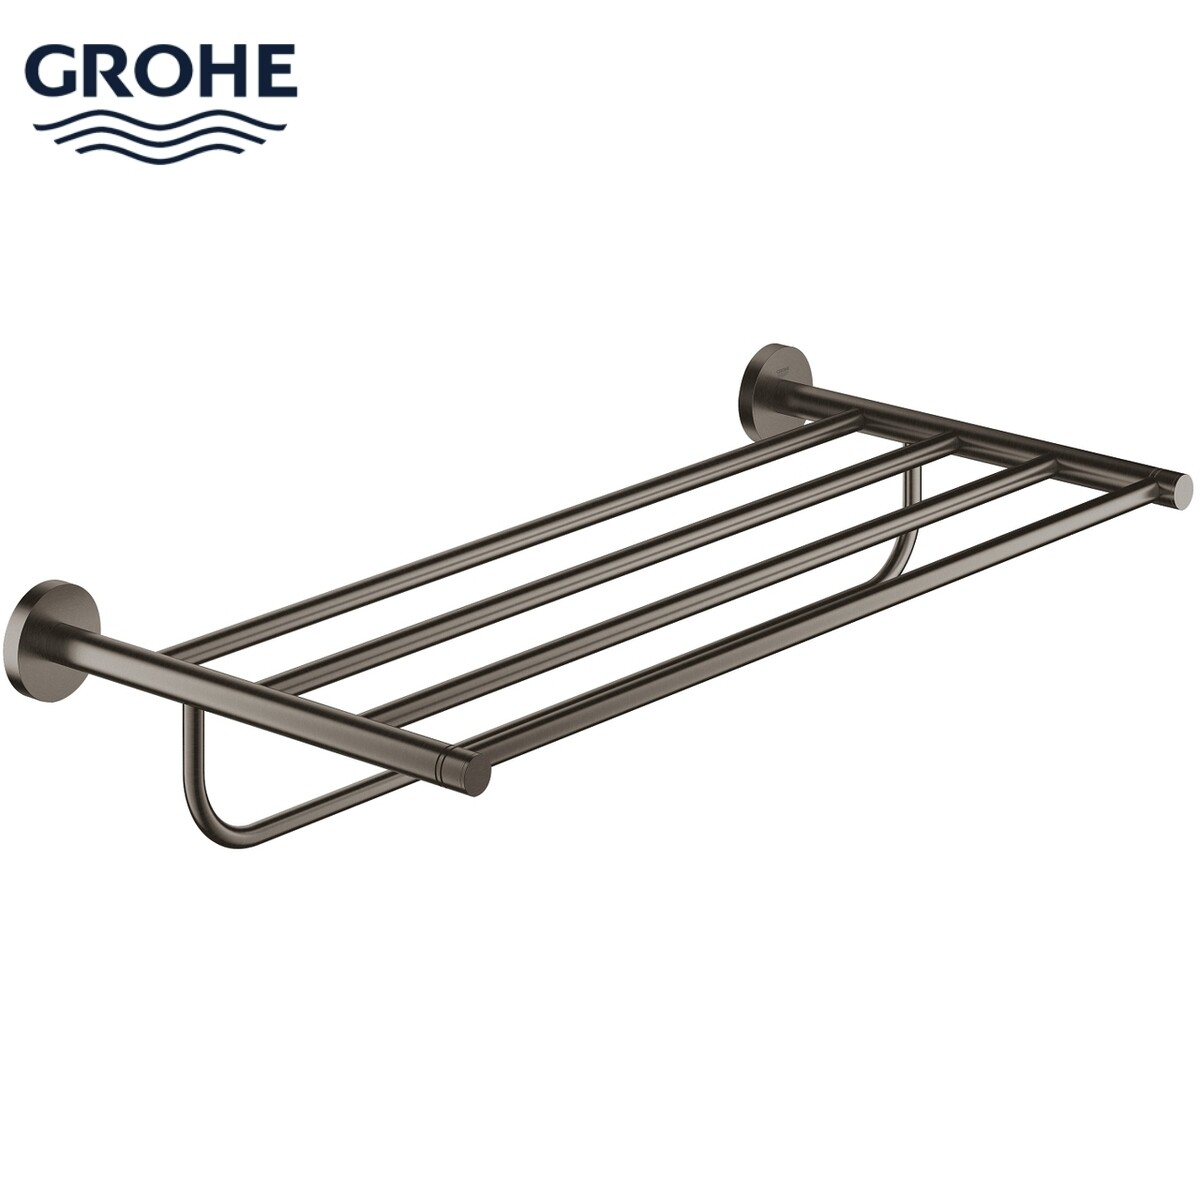 GROHE ESSENTIAL-BLACK